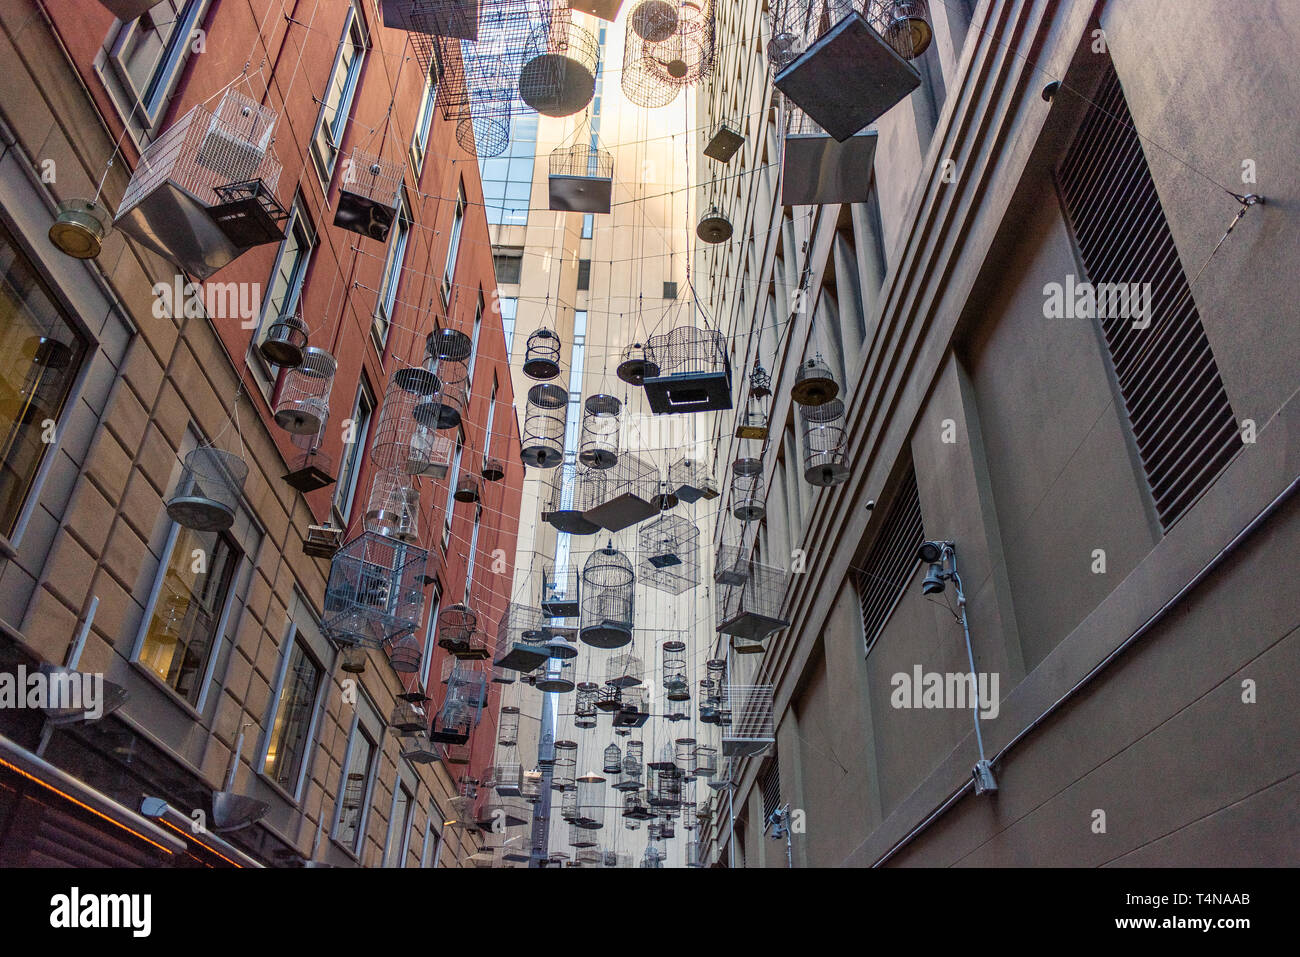 Sydney, New South Wales / Australia - May 13 2016: 'Forgotten Songs' art installation of empty bird cages - Stock Image